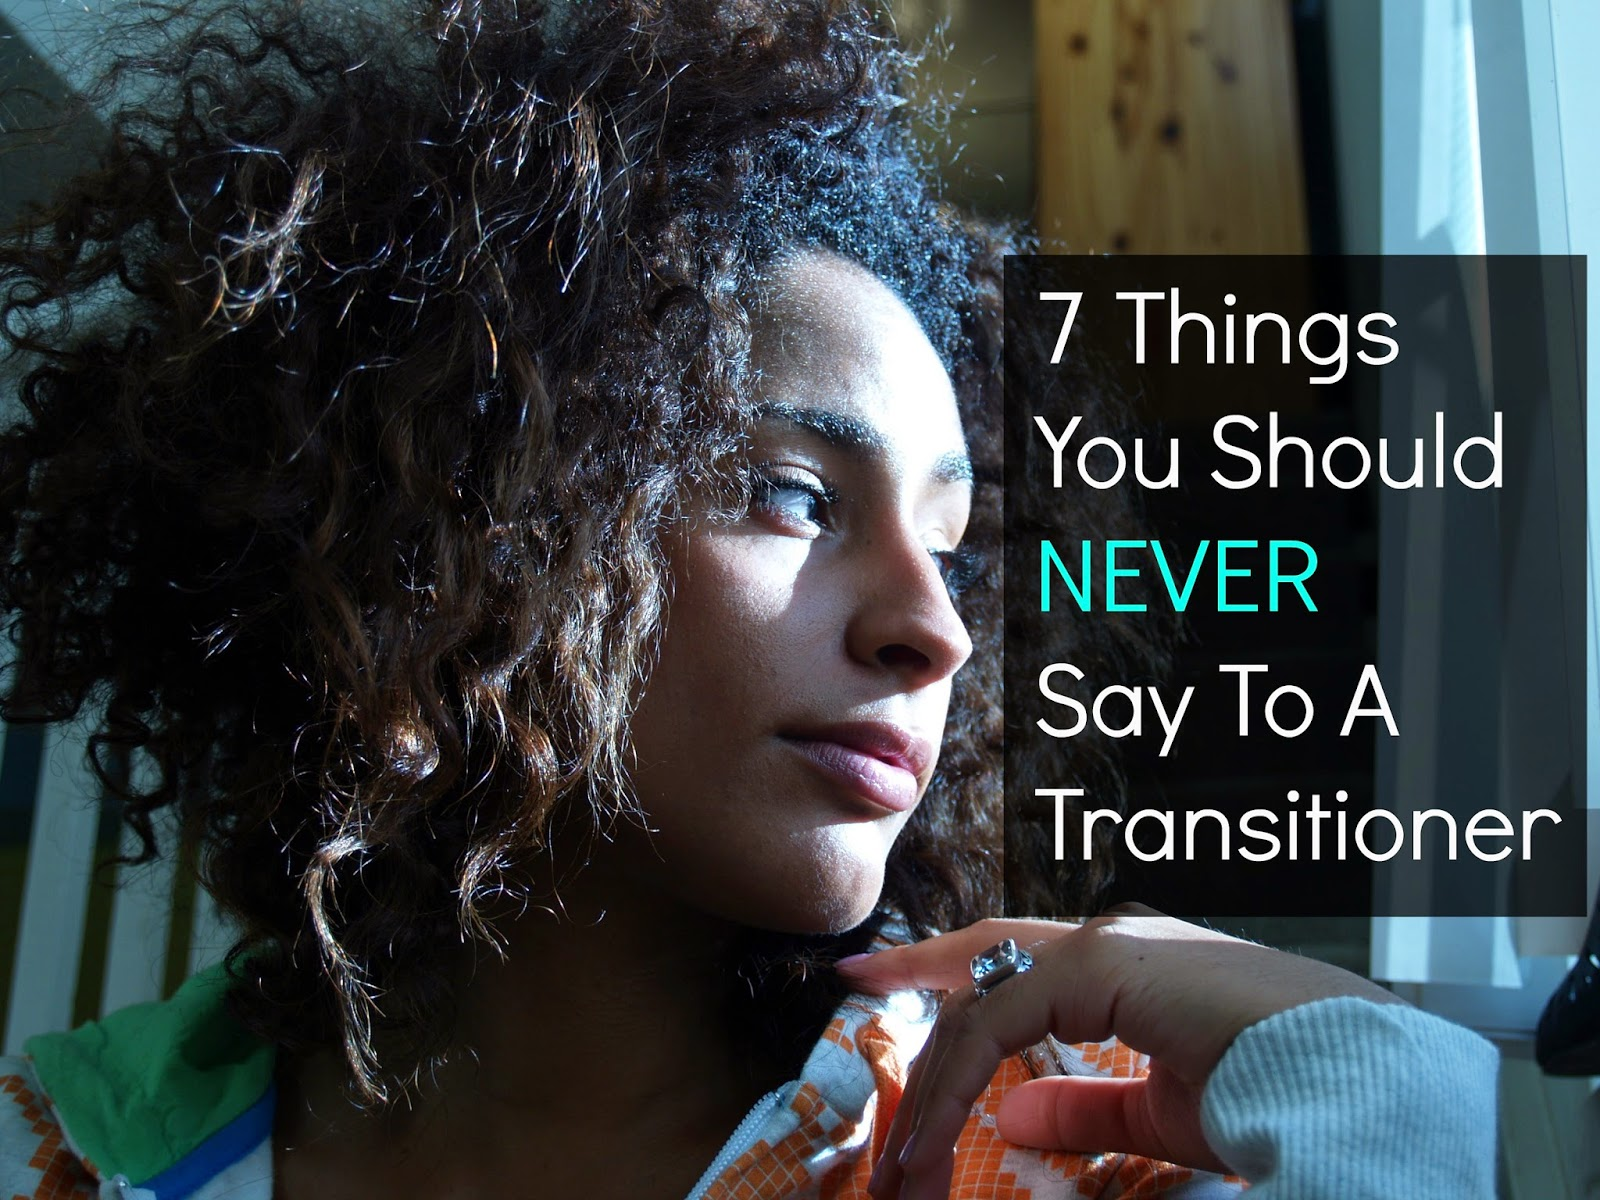 7 Things You Should NEVER Say To A Transitioner